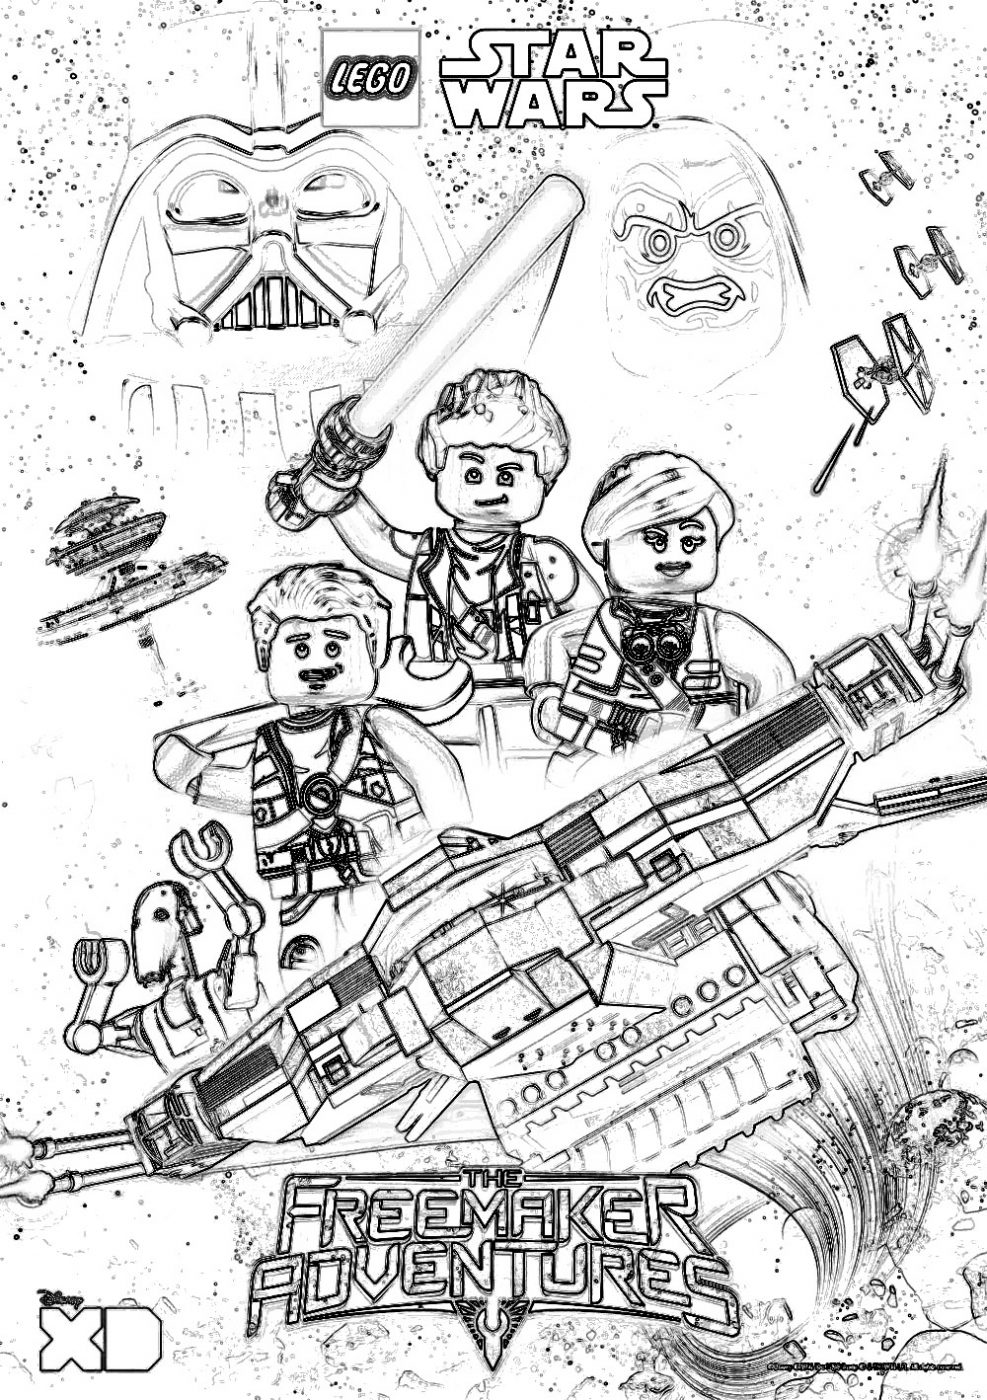 lego_sw freemakeradventures coloring page - Star Wars Coloring Pages